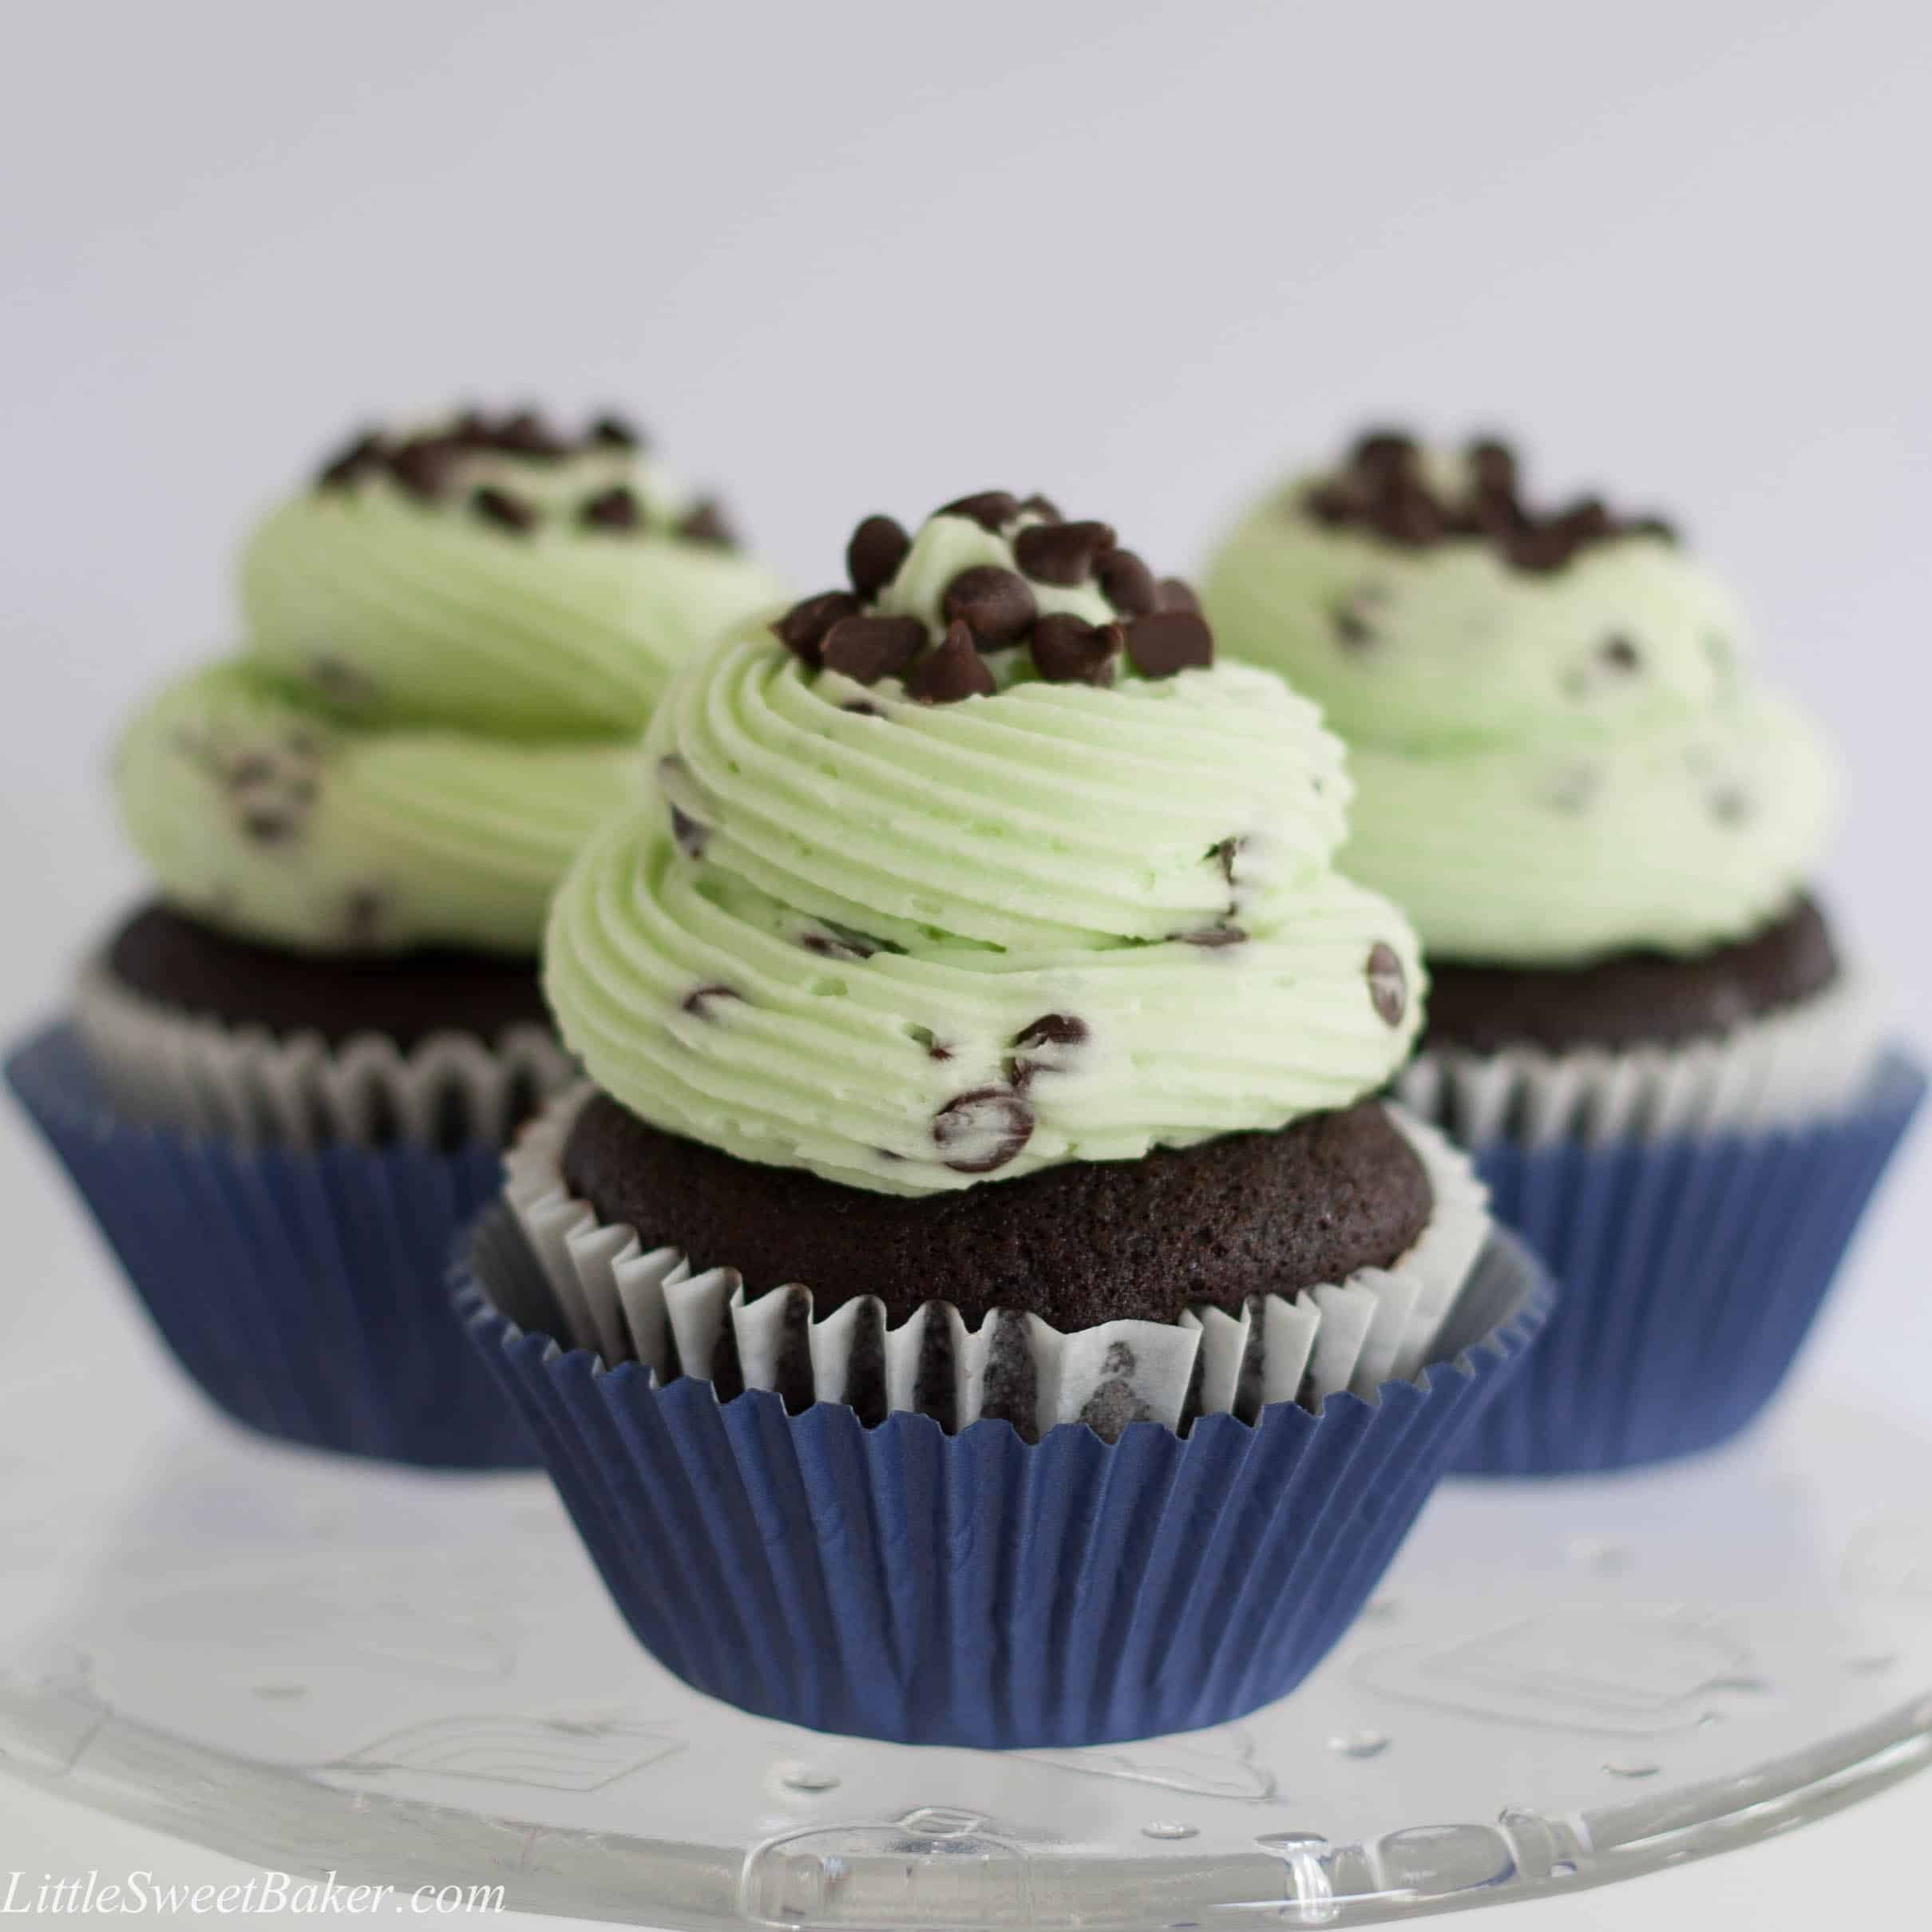 Chocolate Mint Chocolate Chip Cupcakes